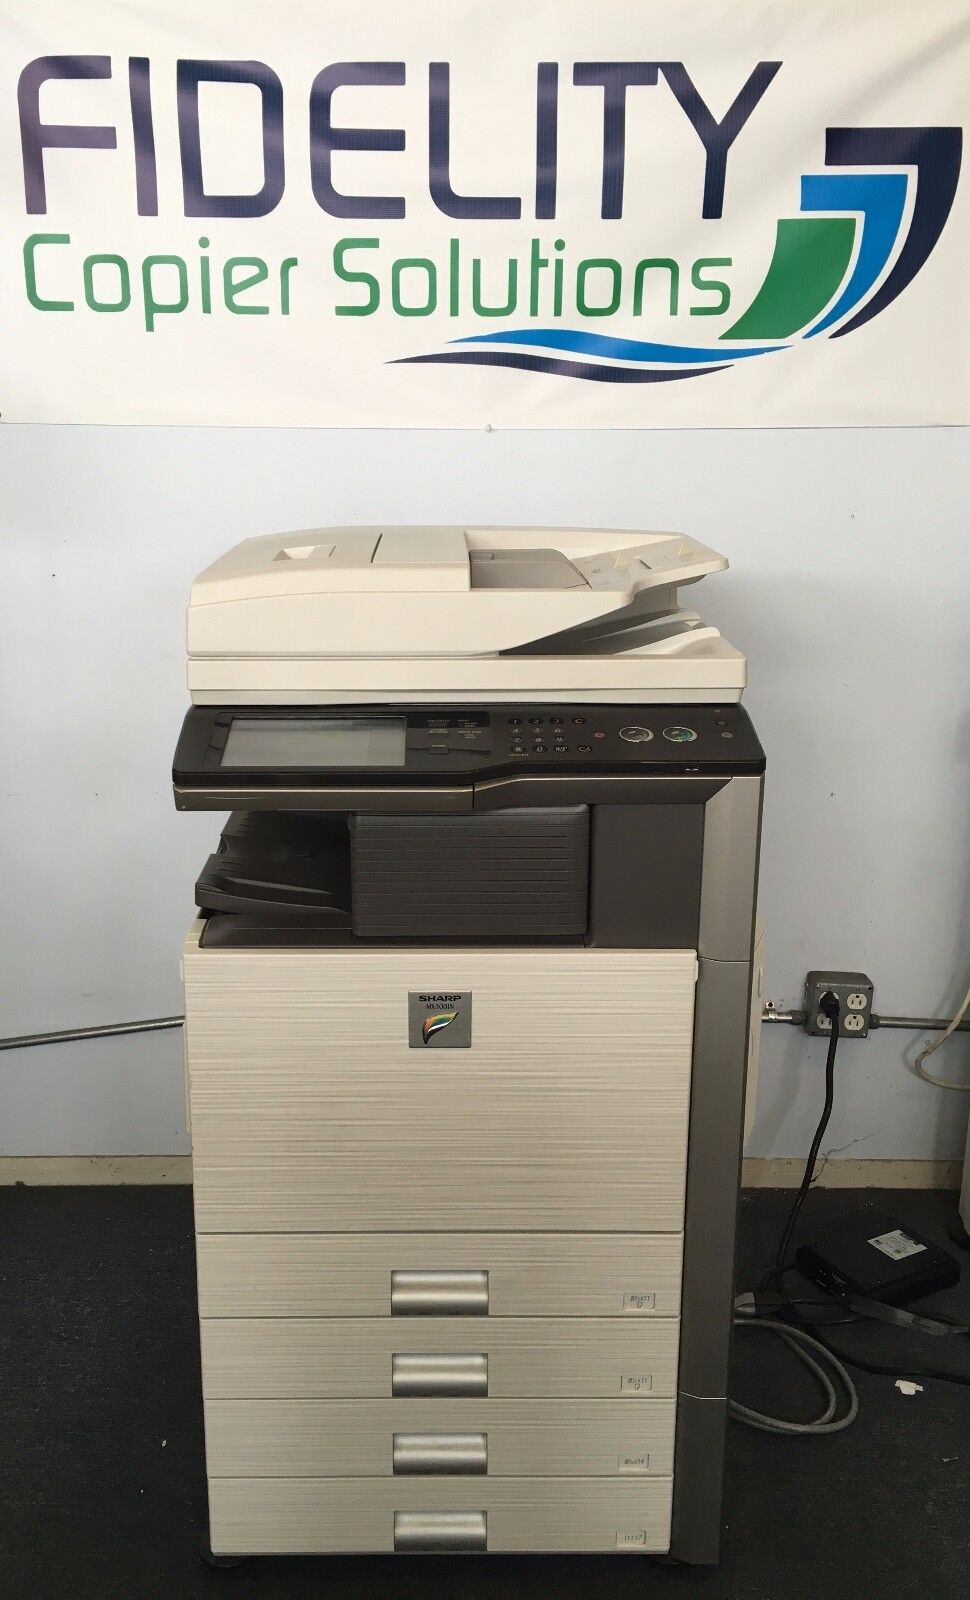 Details about Sharp MX-42N Showroom Quality Color Copier Network Print  Scan Fax Finisher